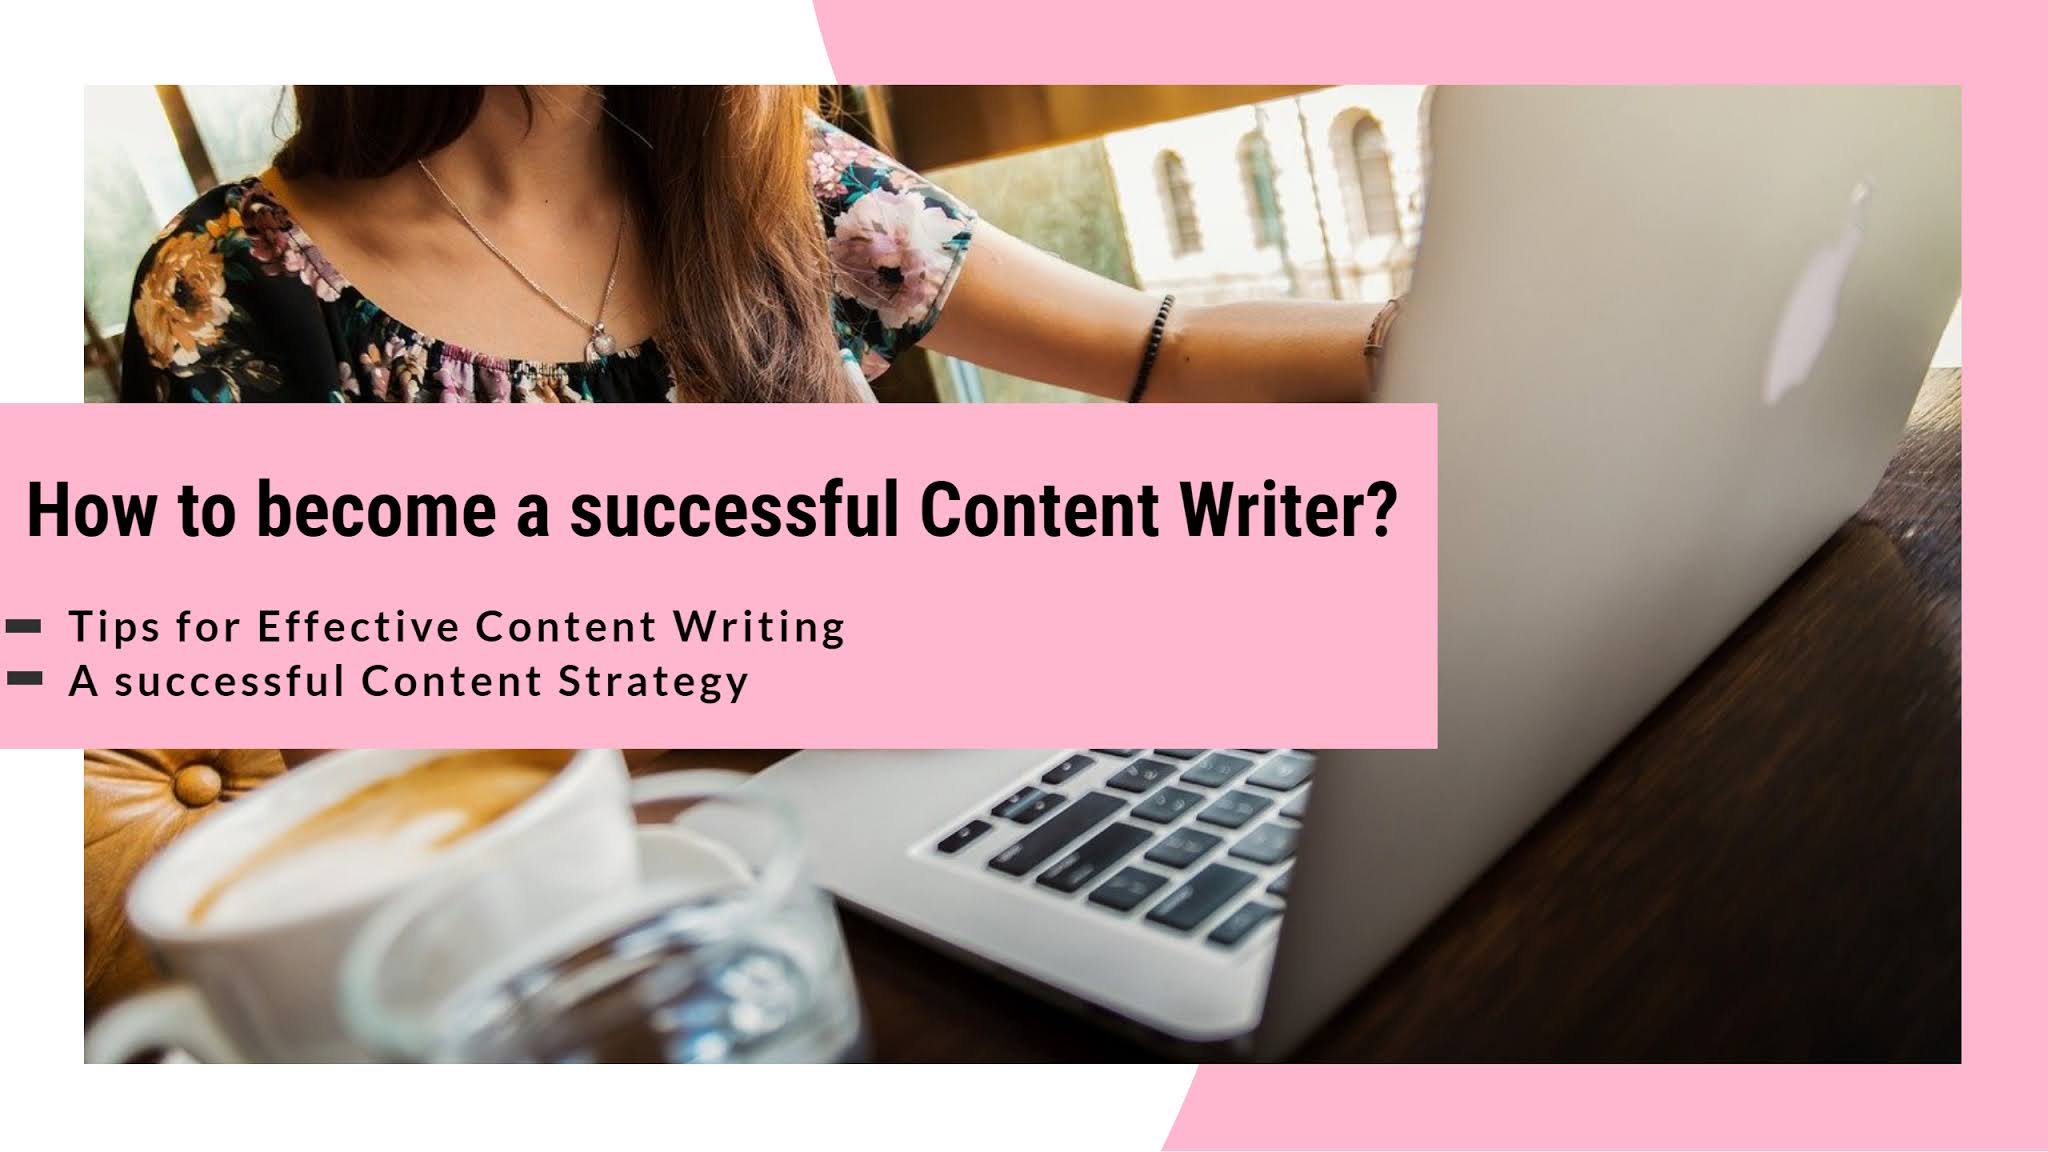 How to become a successful Content Writer?, Tips for Effective Content Writing, A successful Content Strategy, Komal Pandey